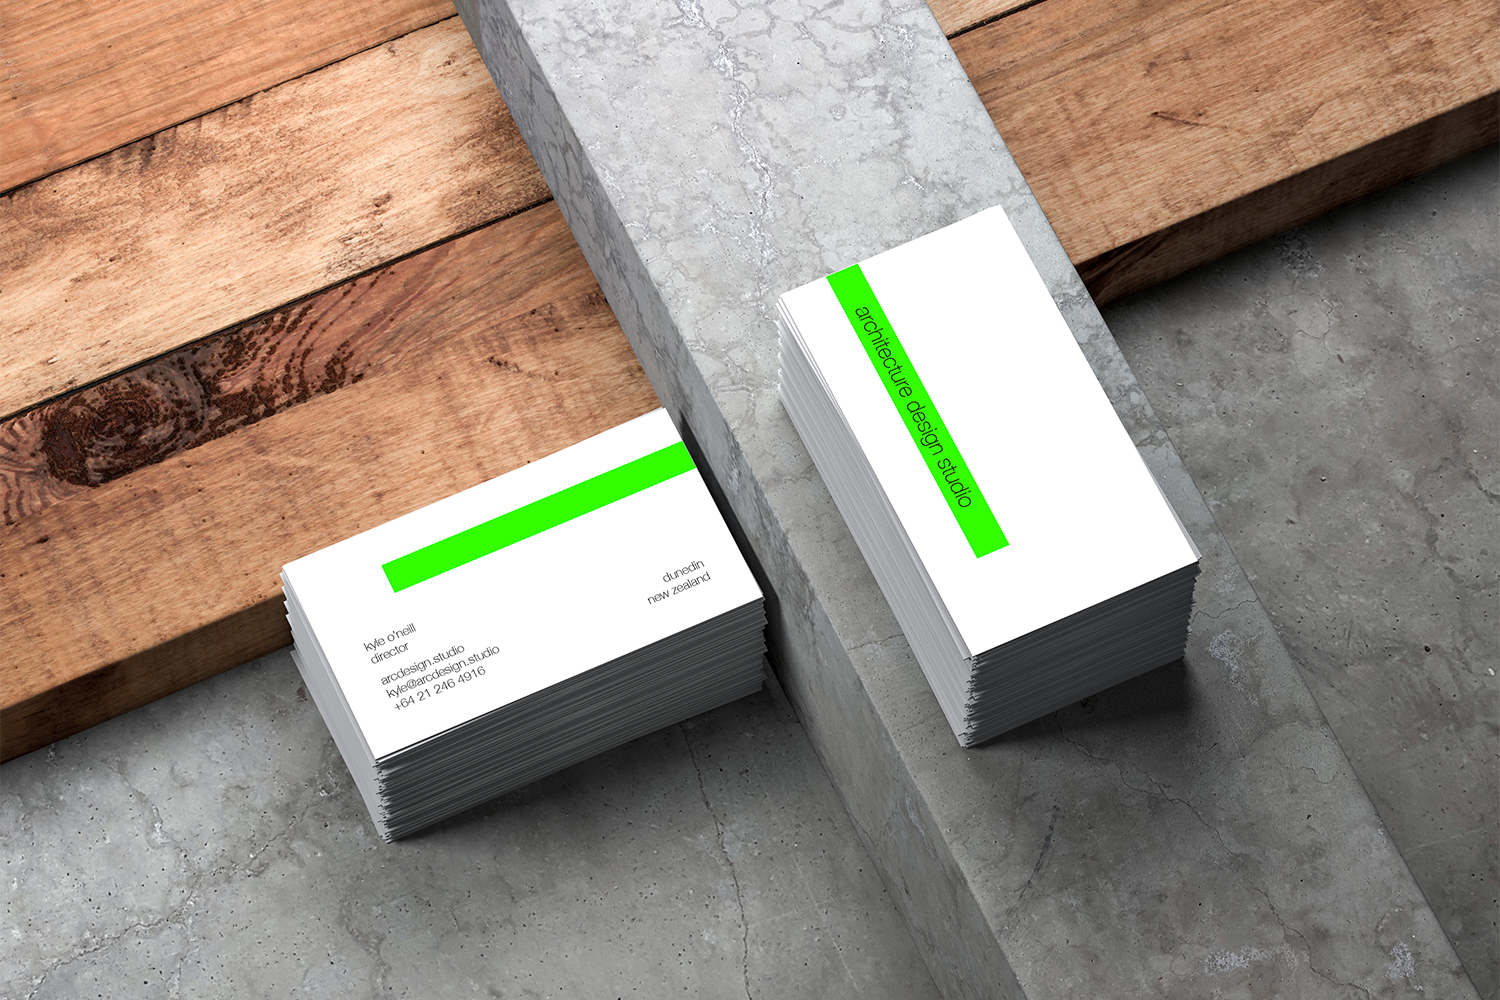 Architecture Design Studio - Business Cards on Concrete and Wood